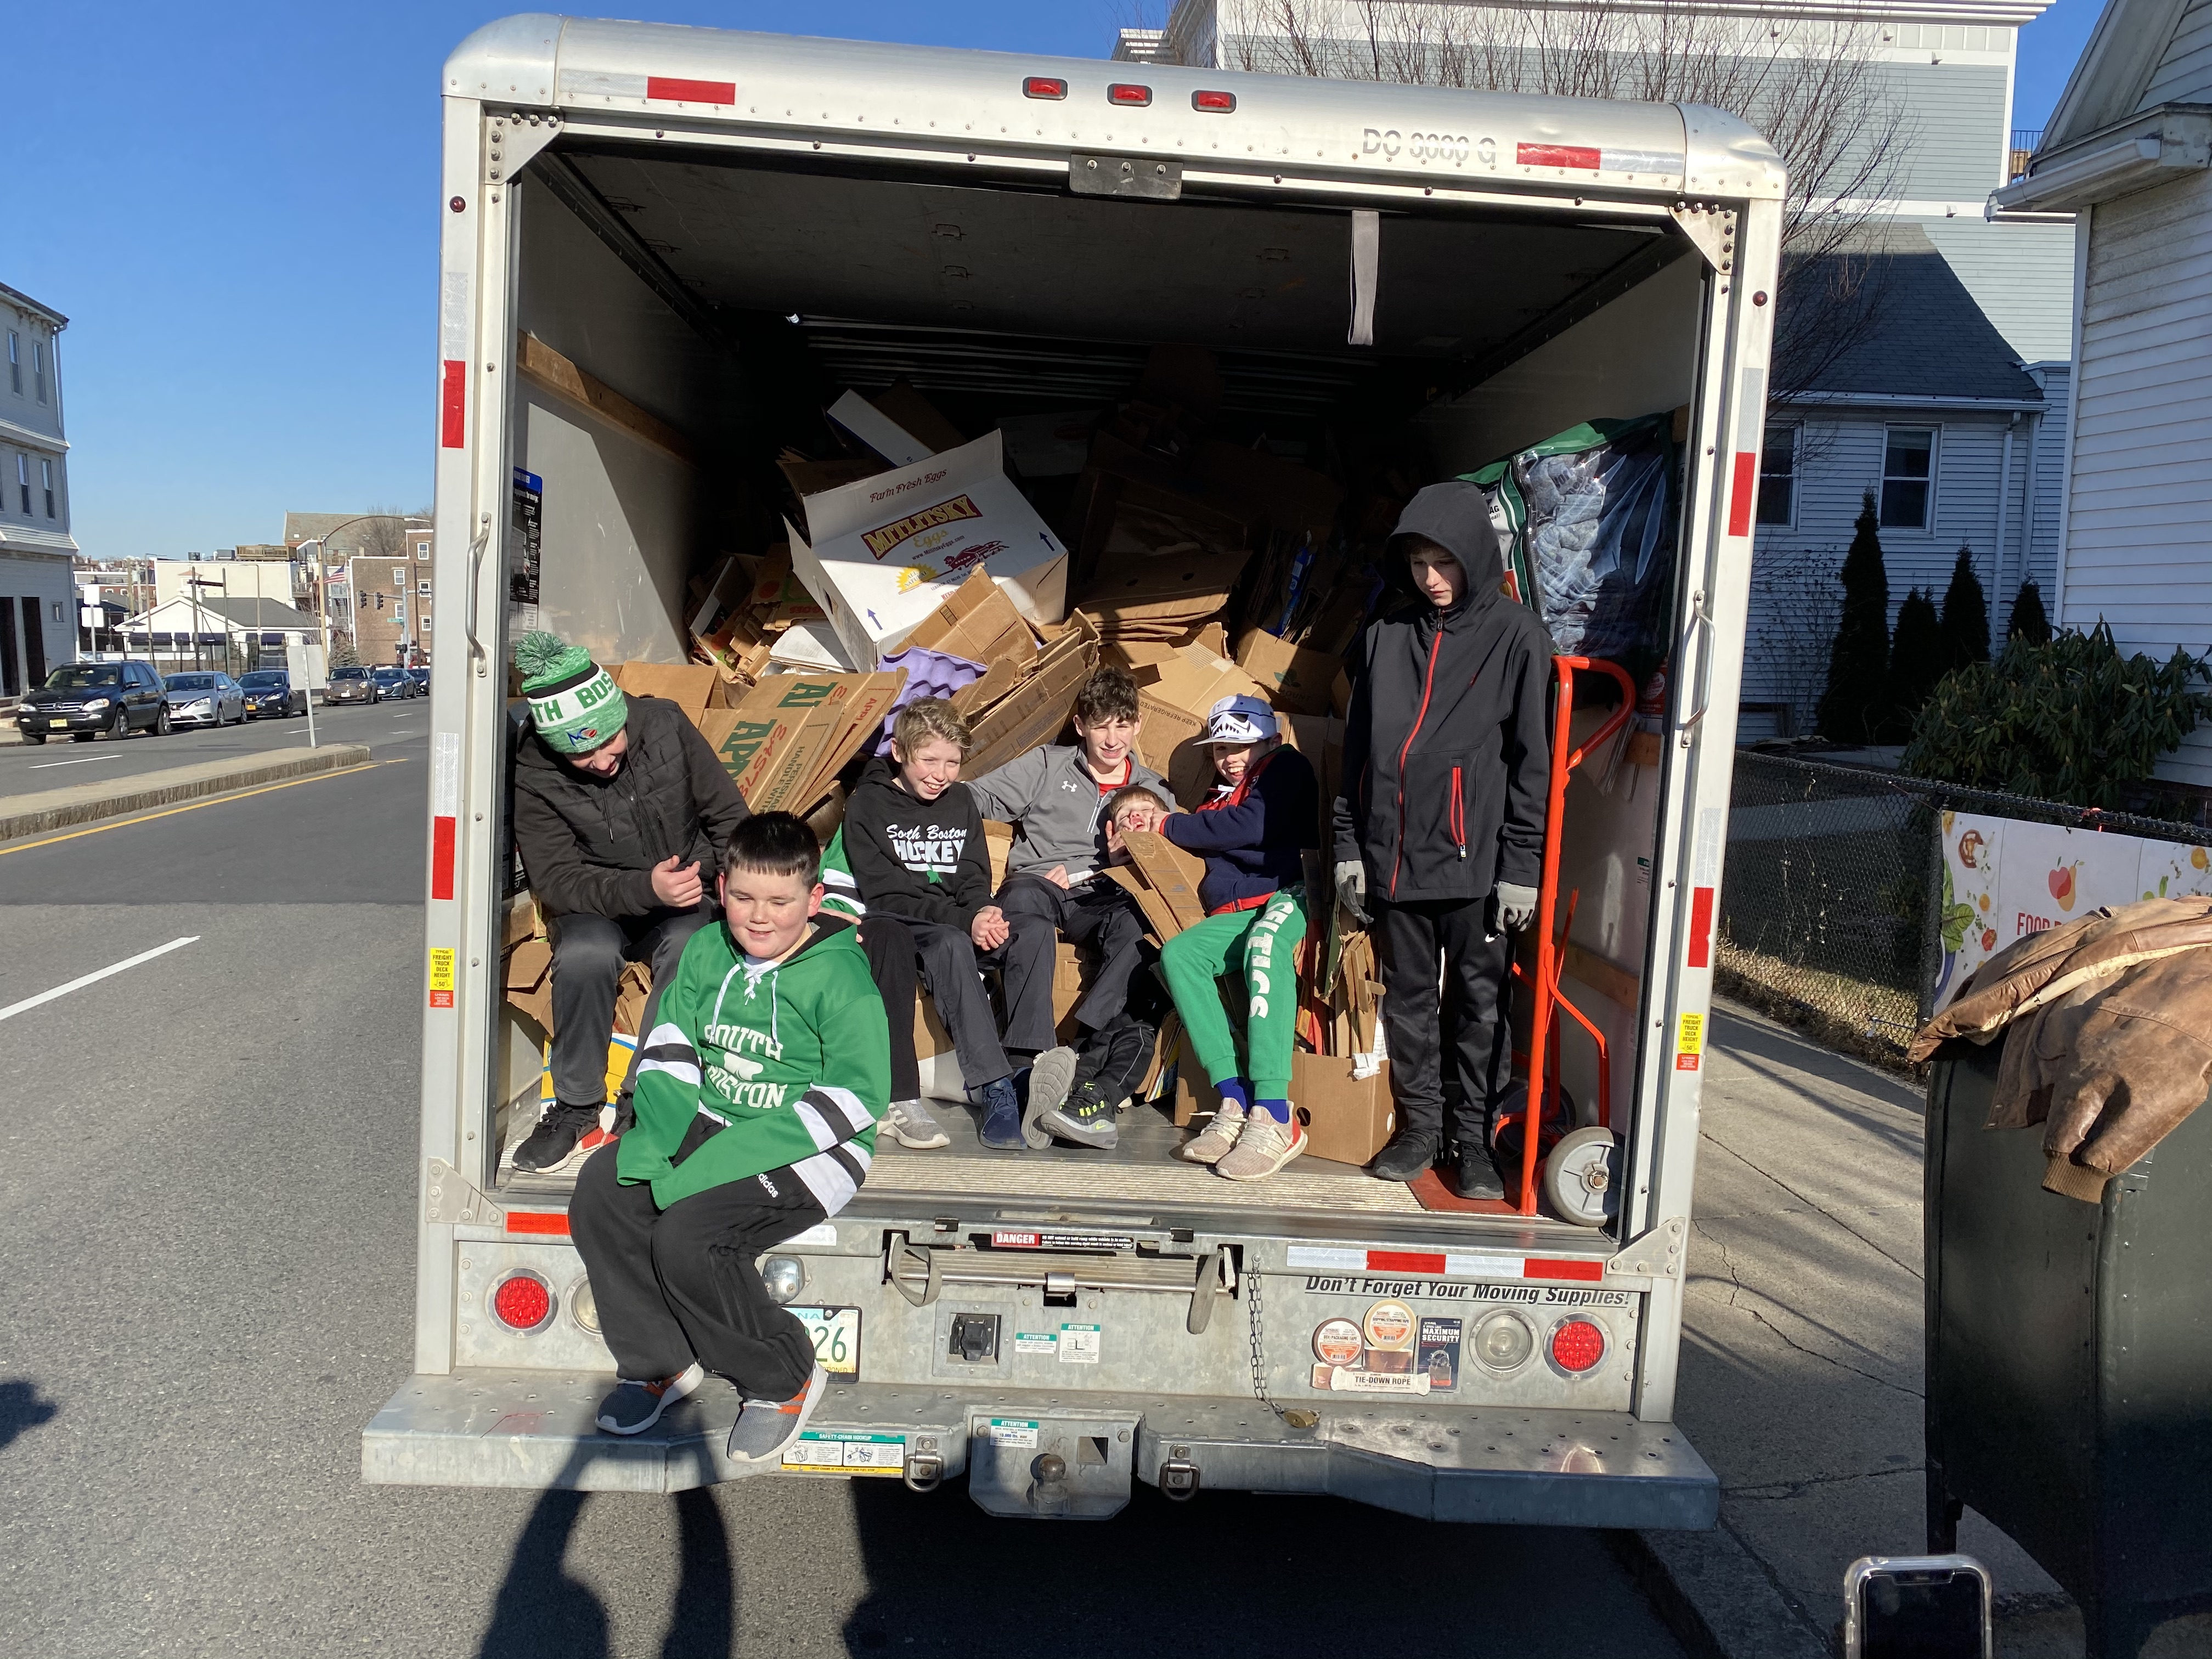 South Boston Youth Hockey Players Volunteer at the Food Pantry